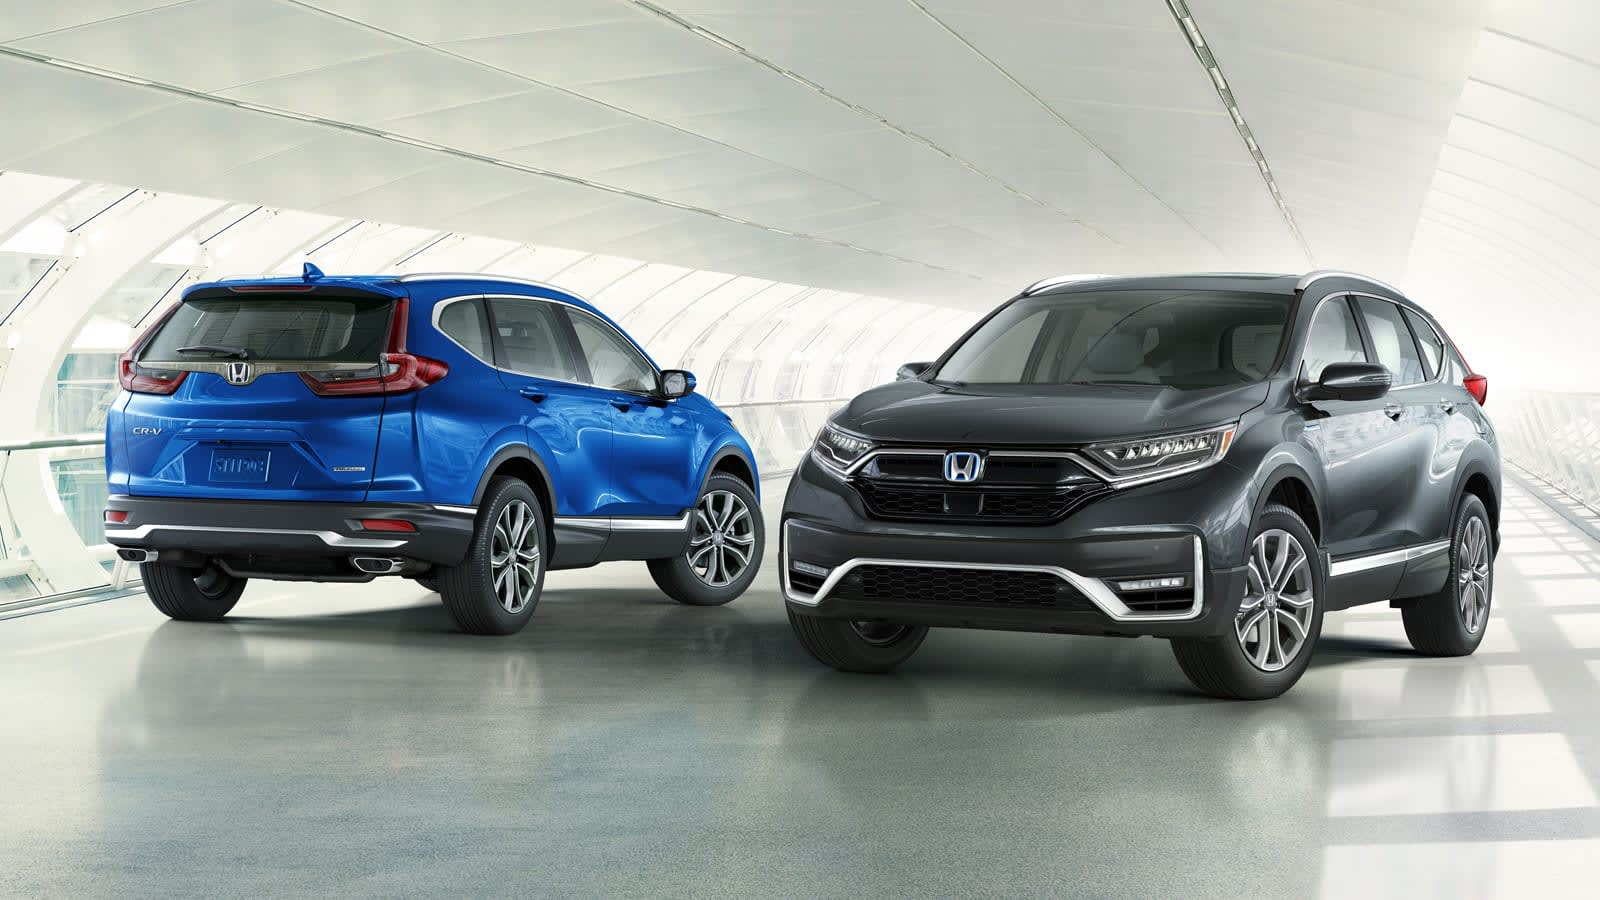 Honda's first hybrid SUV for the US is the 2020 CR-V